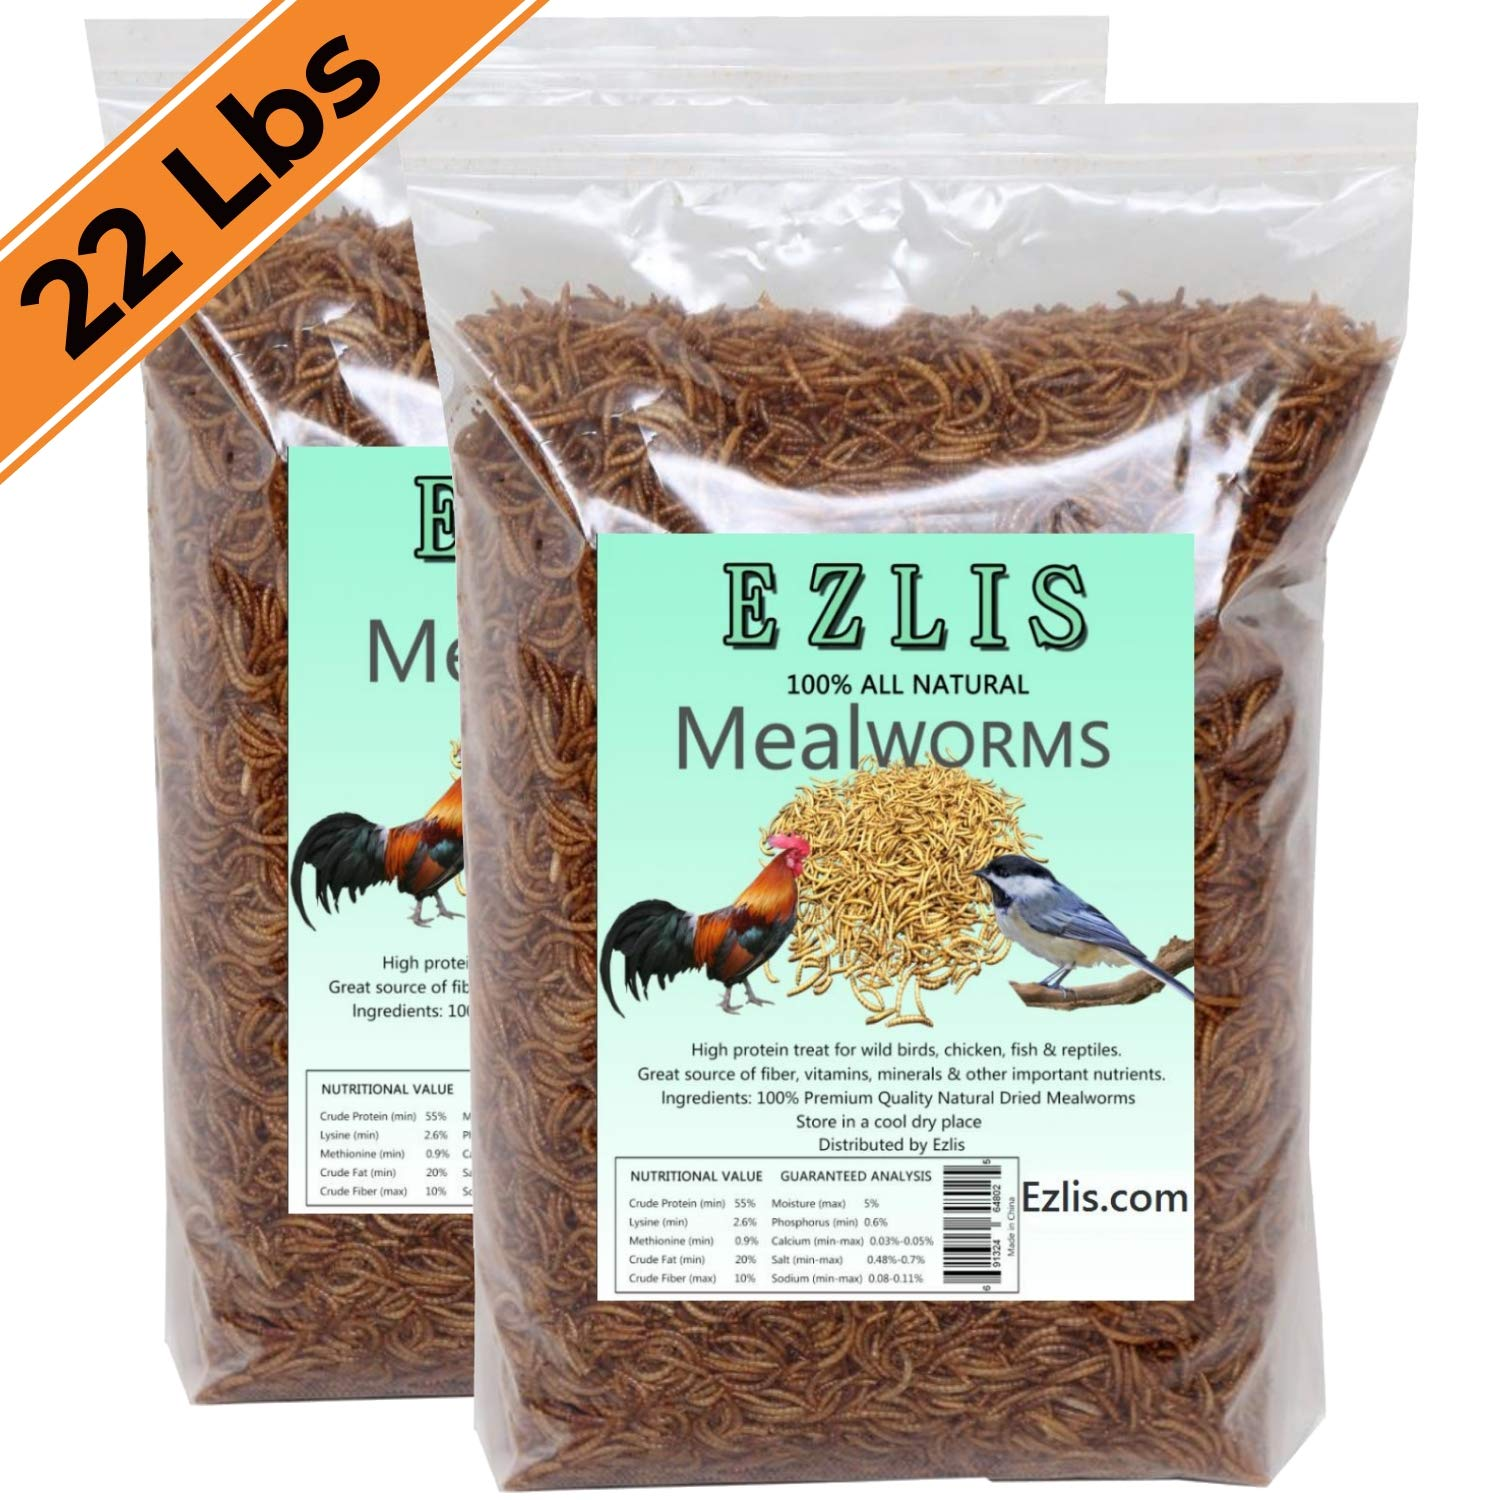 Ezlis Dried Mealworms for Chickens 22lbs - Chicken Treats, Duck Feed, Organic Chicken Feed, High-Protein Meal Worms Bulk Food for Chickens, Bluebird Food, Poultry Feed, Hens, Wild Birds, Fish, Turtle by Ezlis